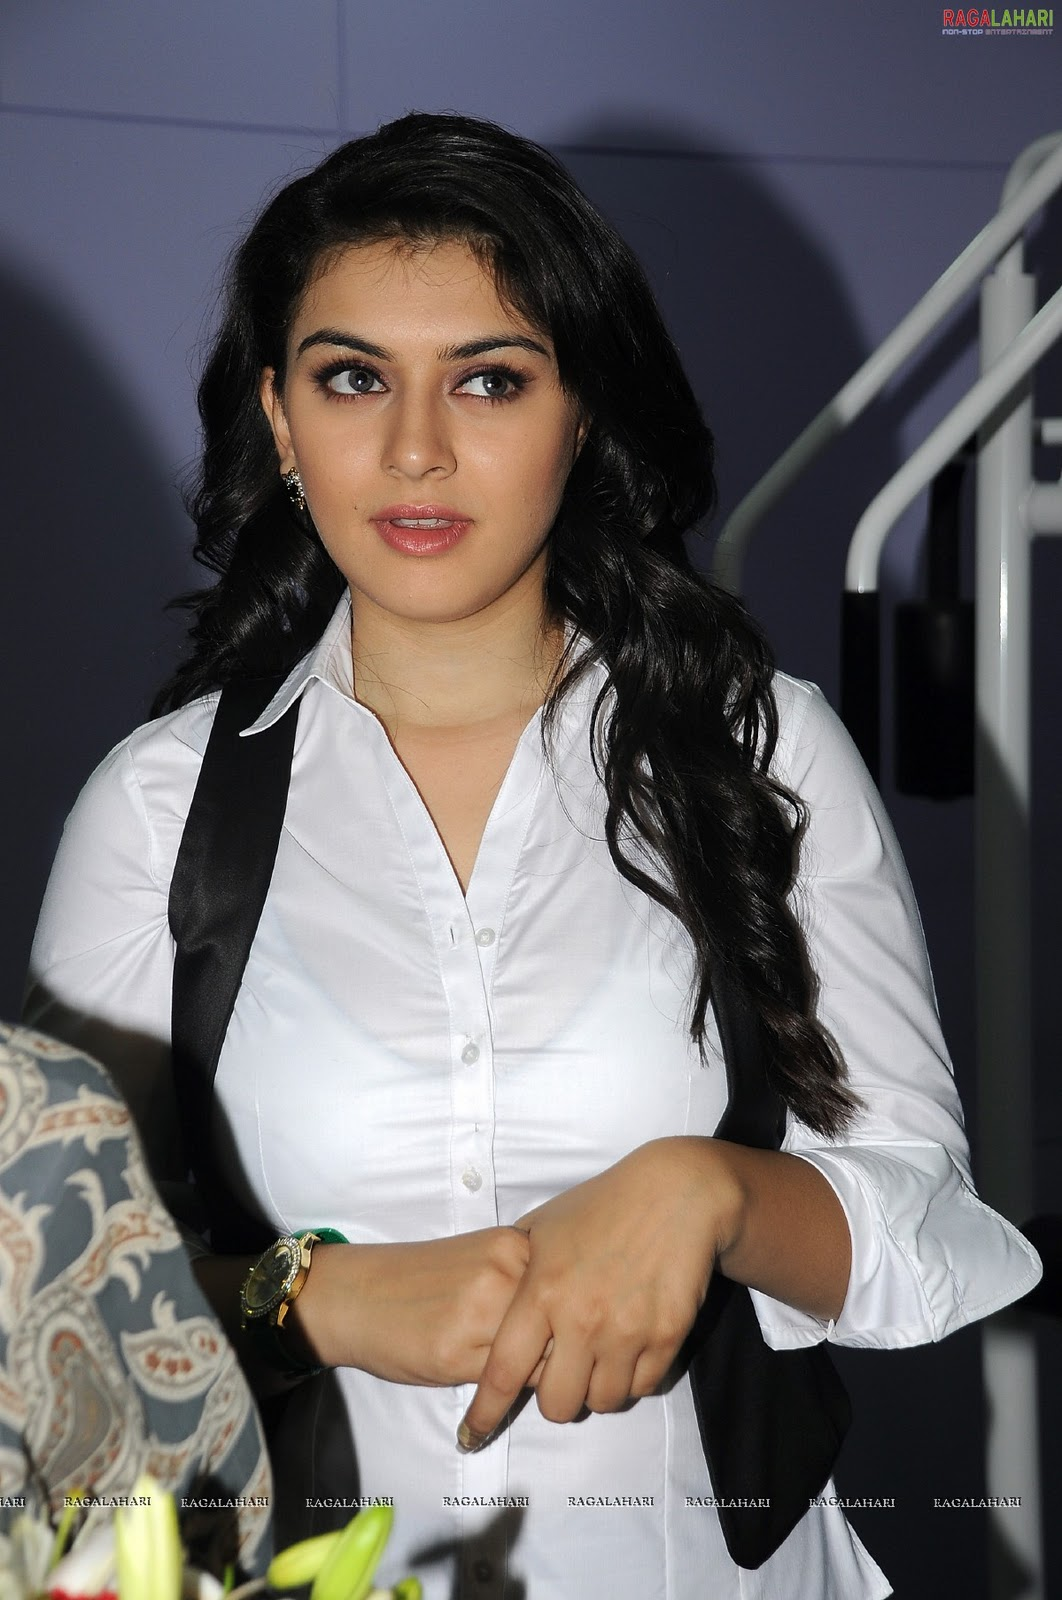 Hansika Motwani Hot Sexy Boobs Nipple Press Kiss Unseen -8906